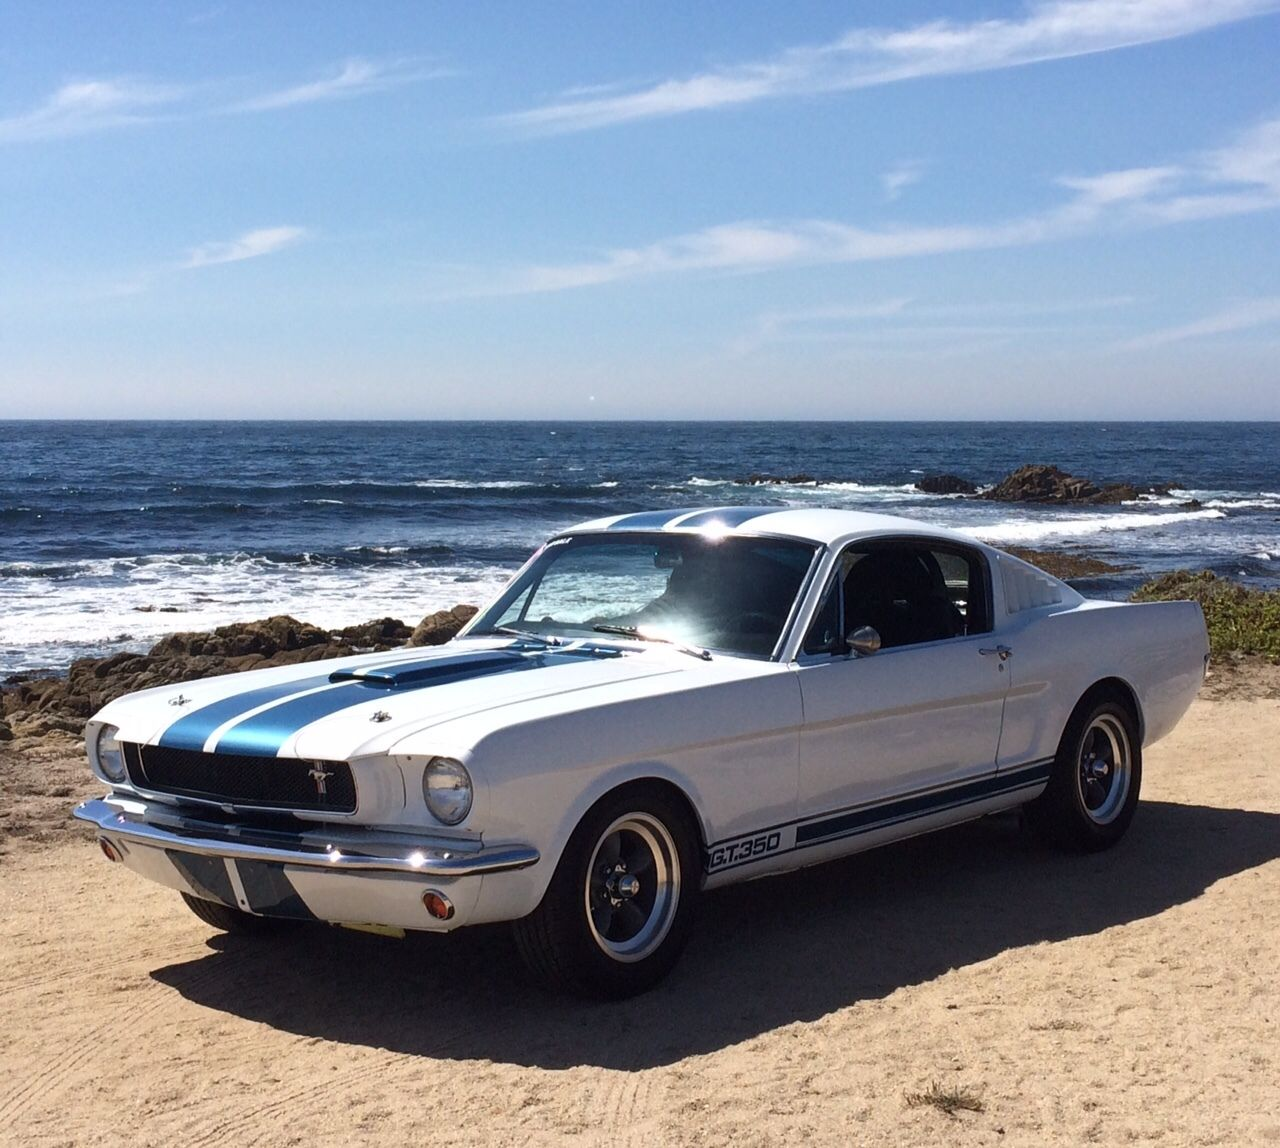 1965 Mustang Station Wagon >> 1965 Ford Mustang GT350 Tribute - Project Cars For Sale